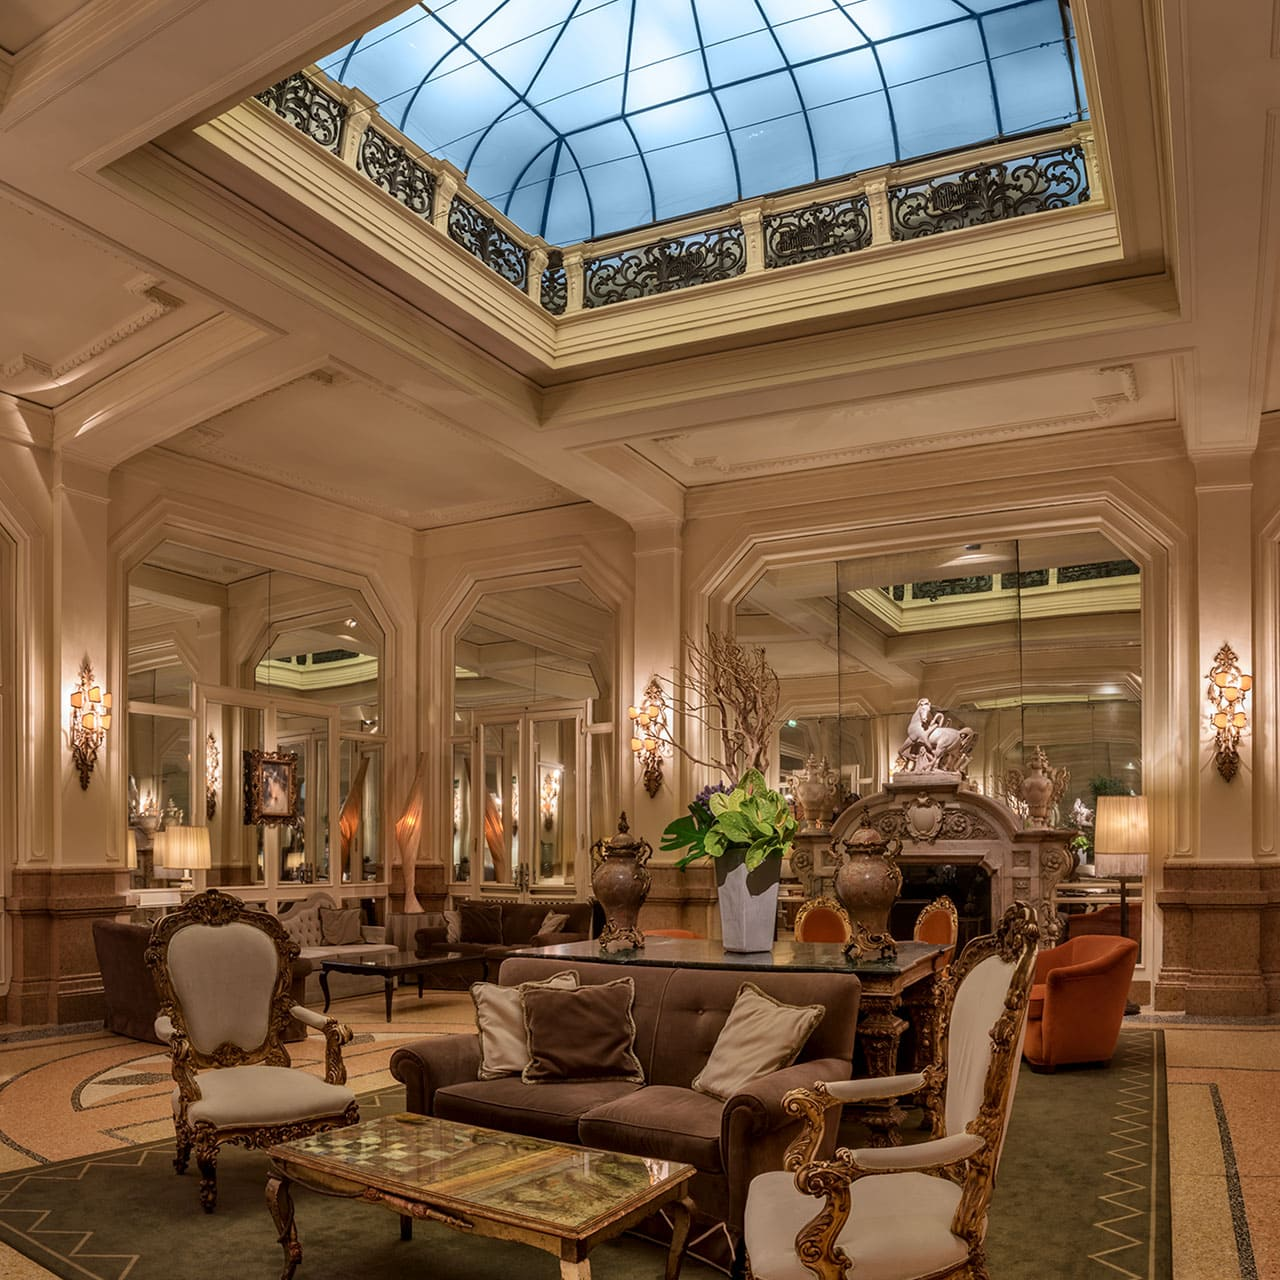 Interior image with stained glass ceiling and lounge hall in the Grand Hotel et de Milan